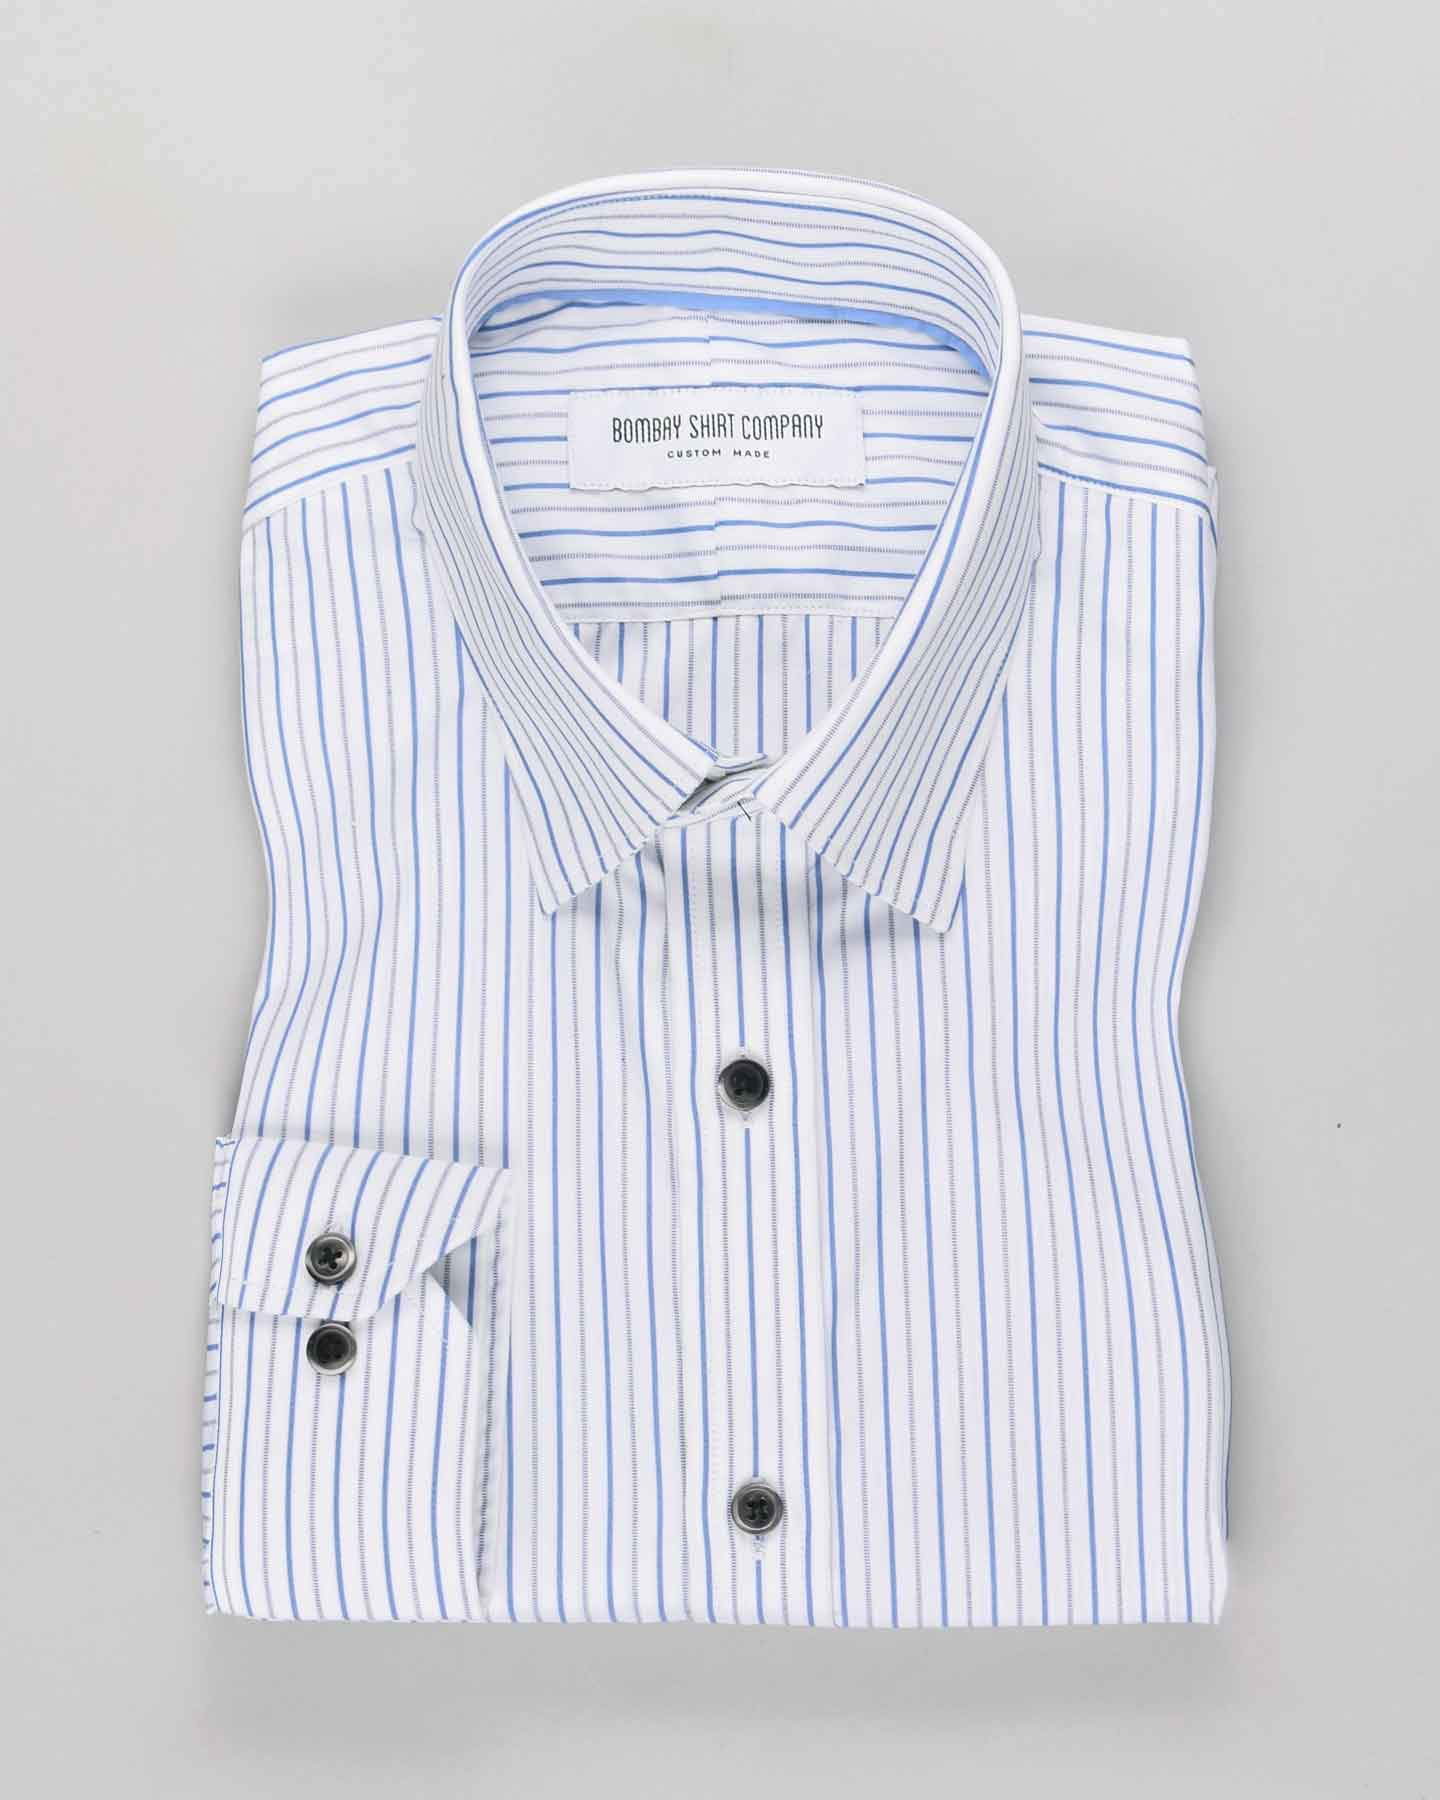 Slender Stripes Shirt